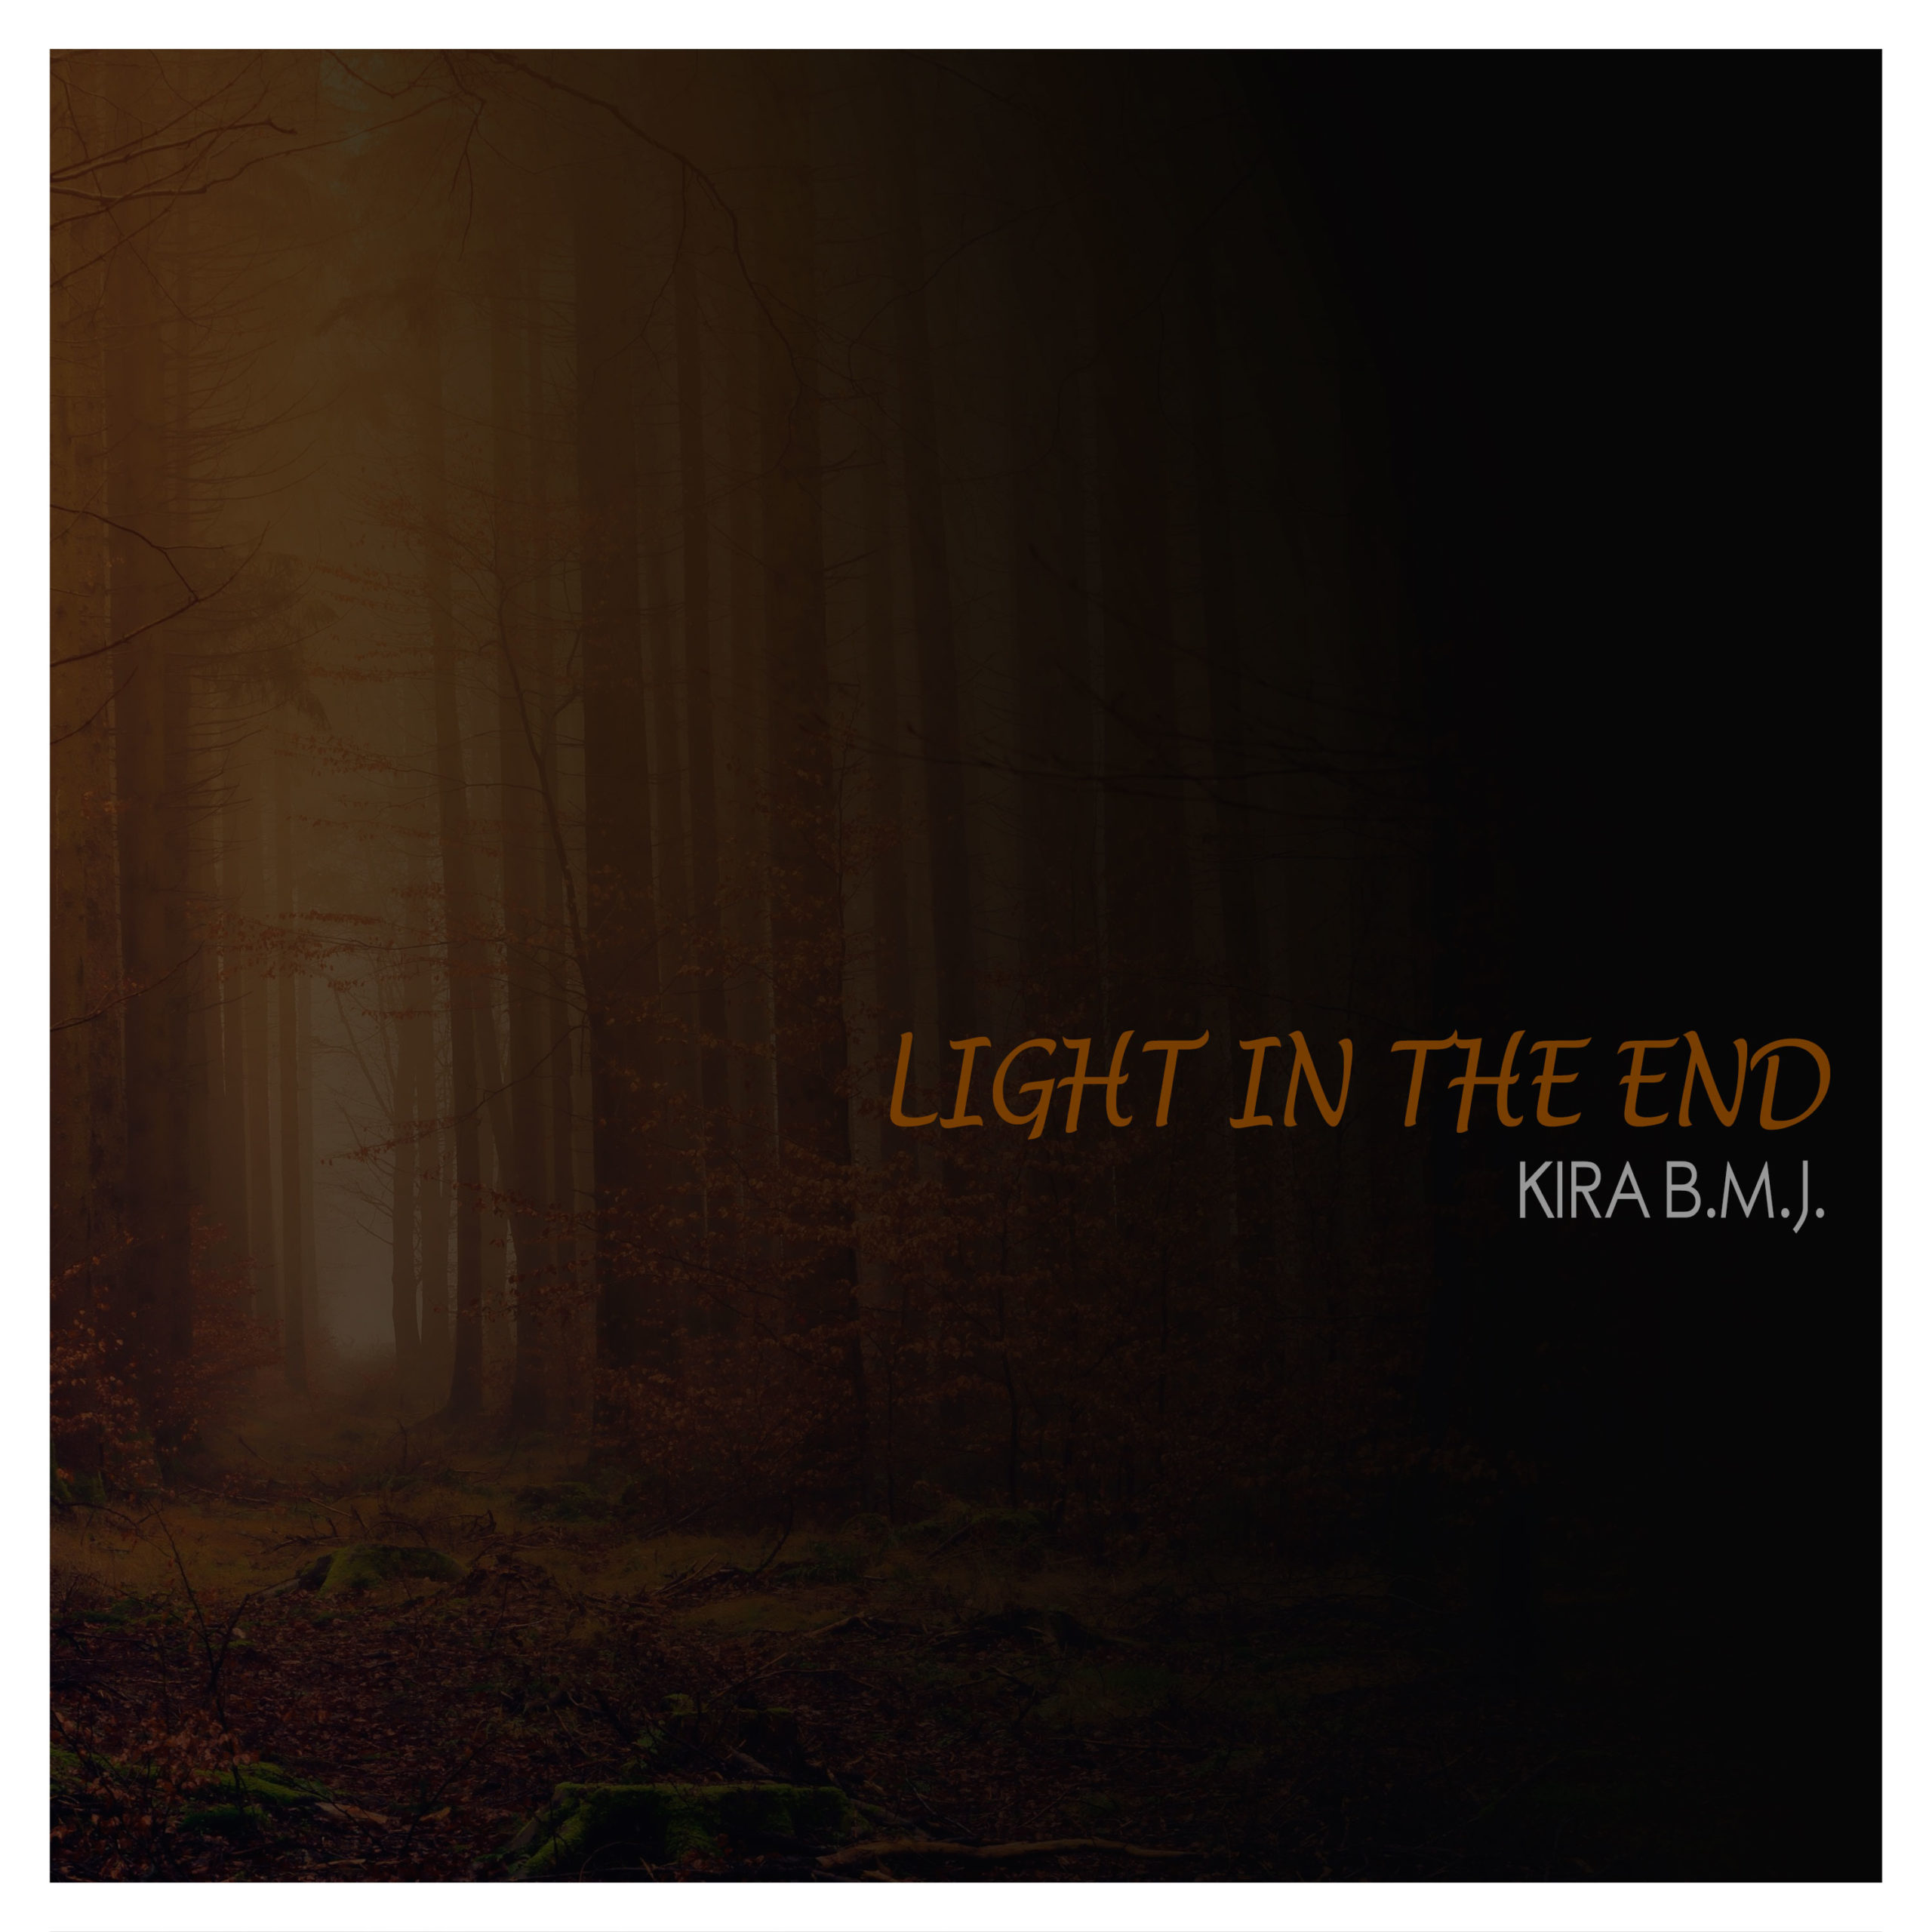 https://www.ultimate-house-records.com/wp-content/uploads/2021/05/Kira_BMJ-Light_in_the_End-Cover-3000px_web-scaled.jpg